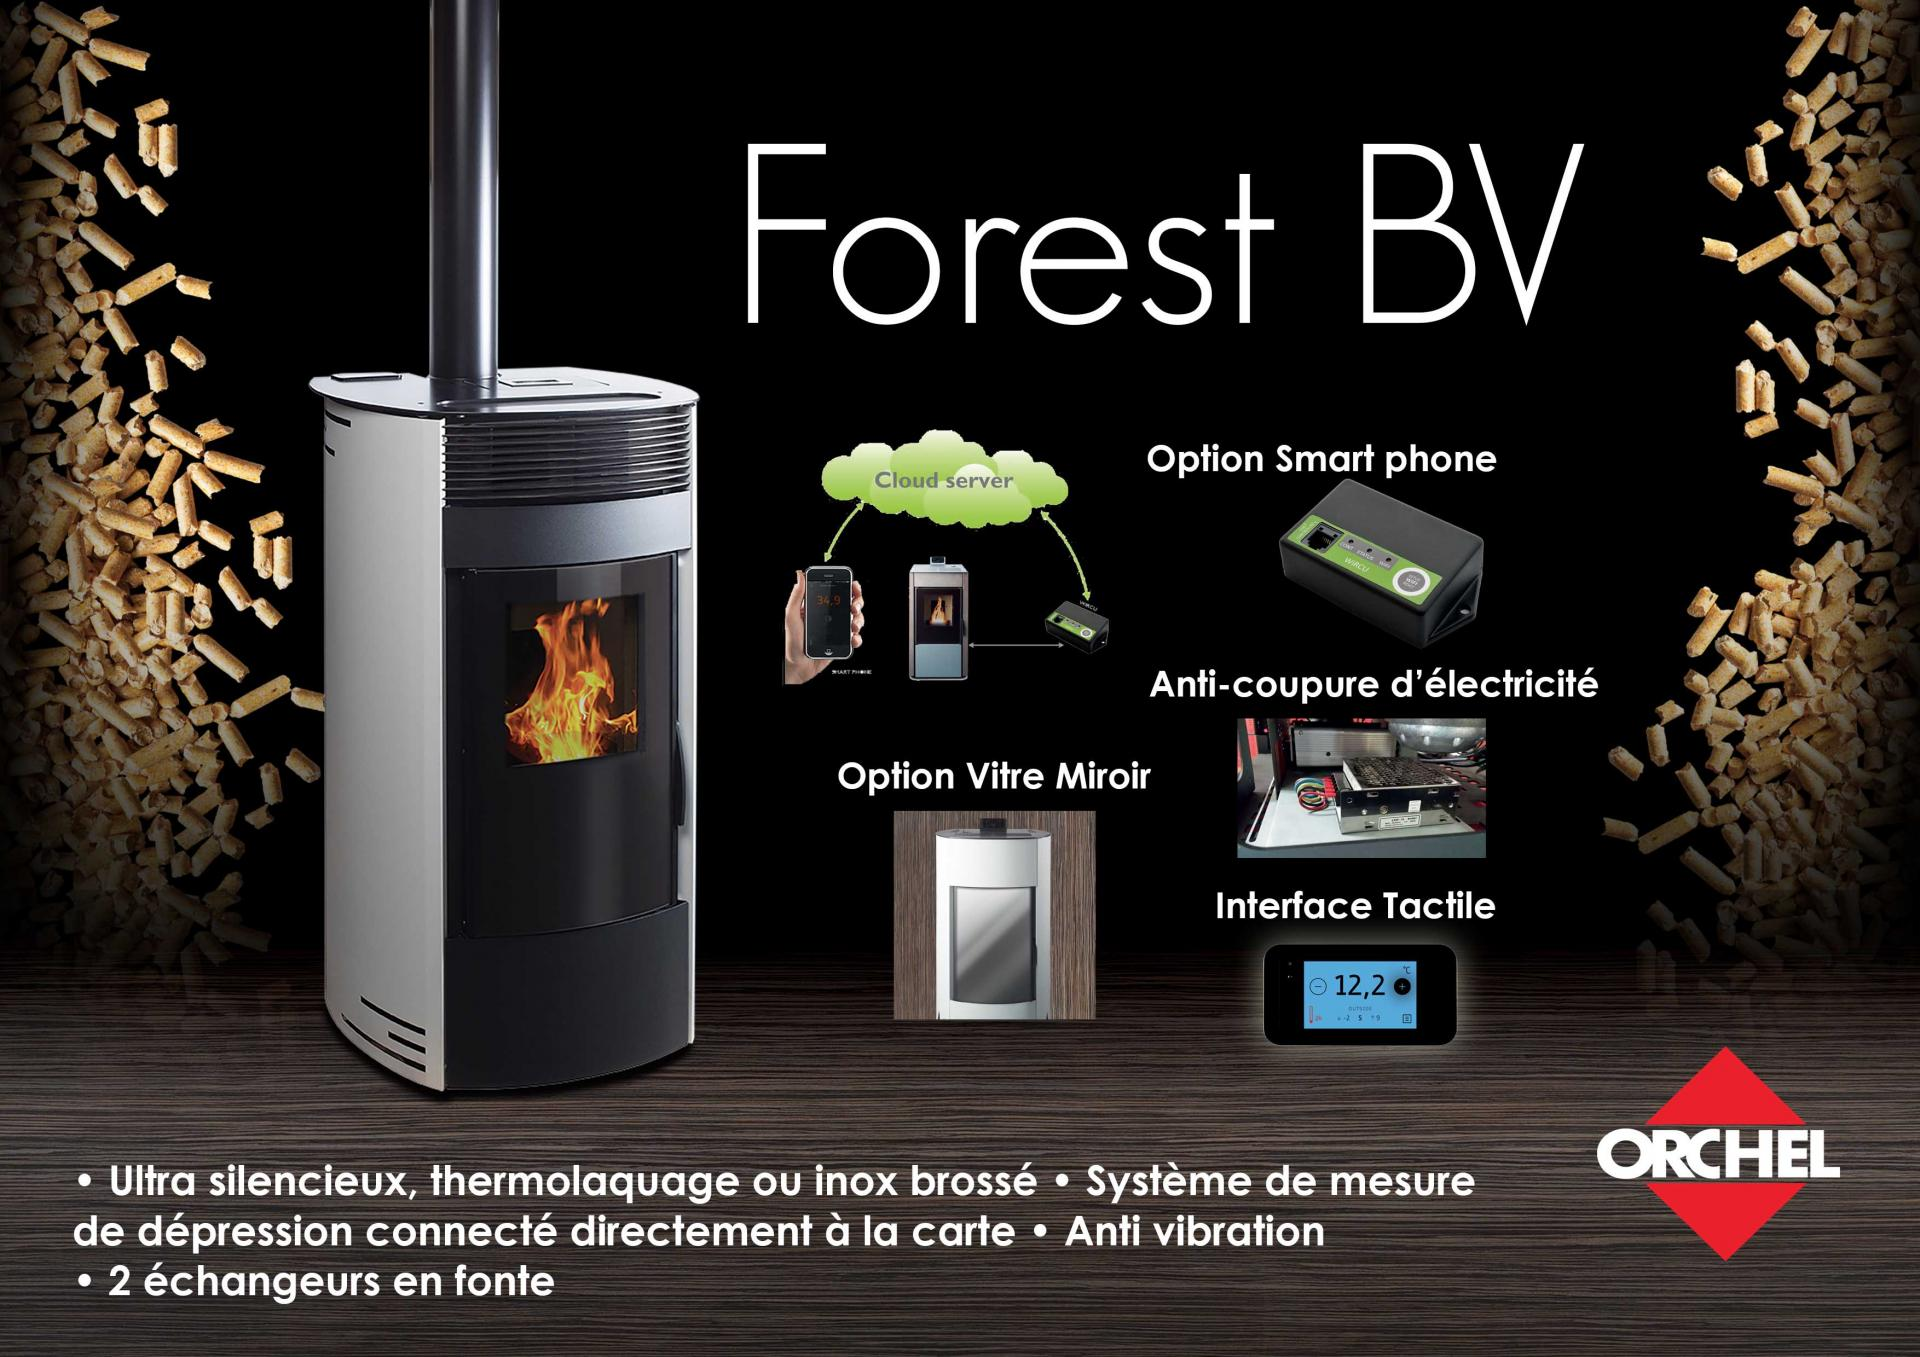 5 forest bv